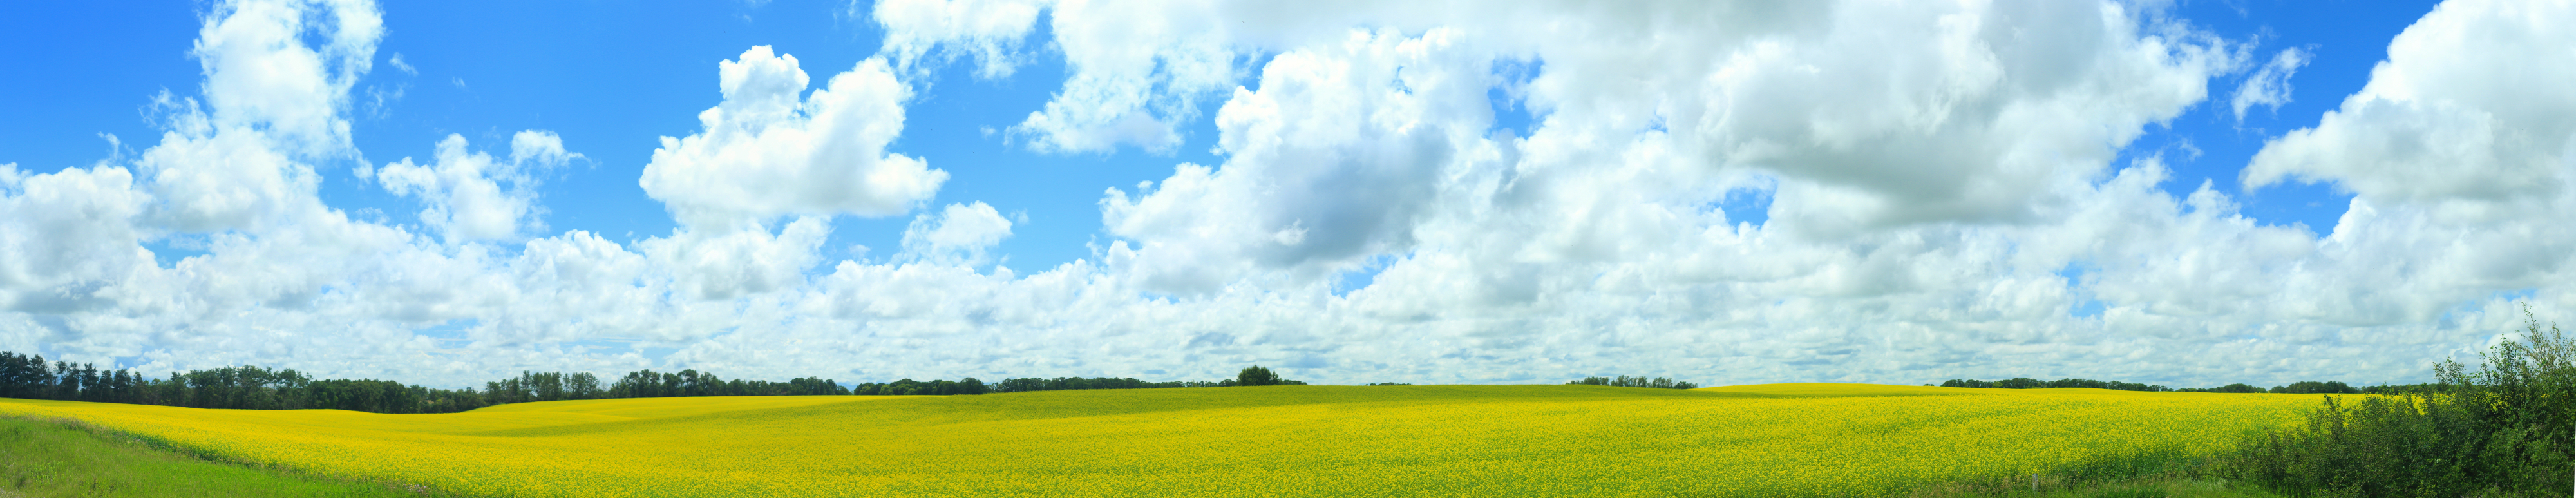 Canola field panorama